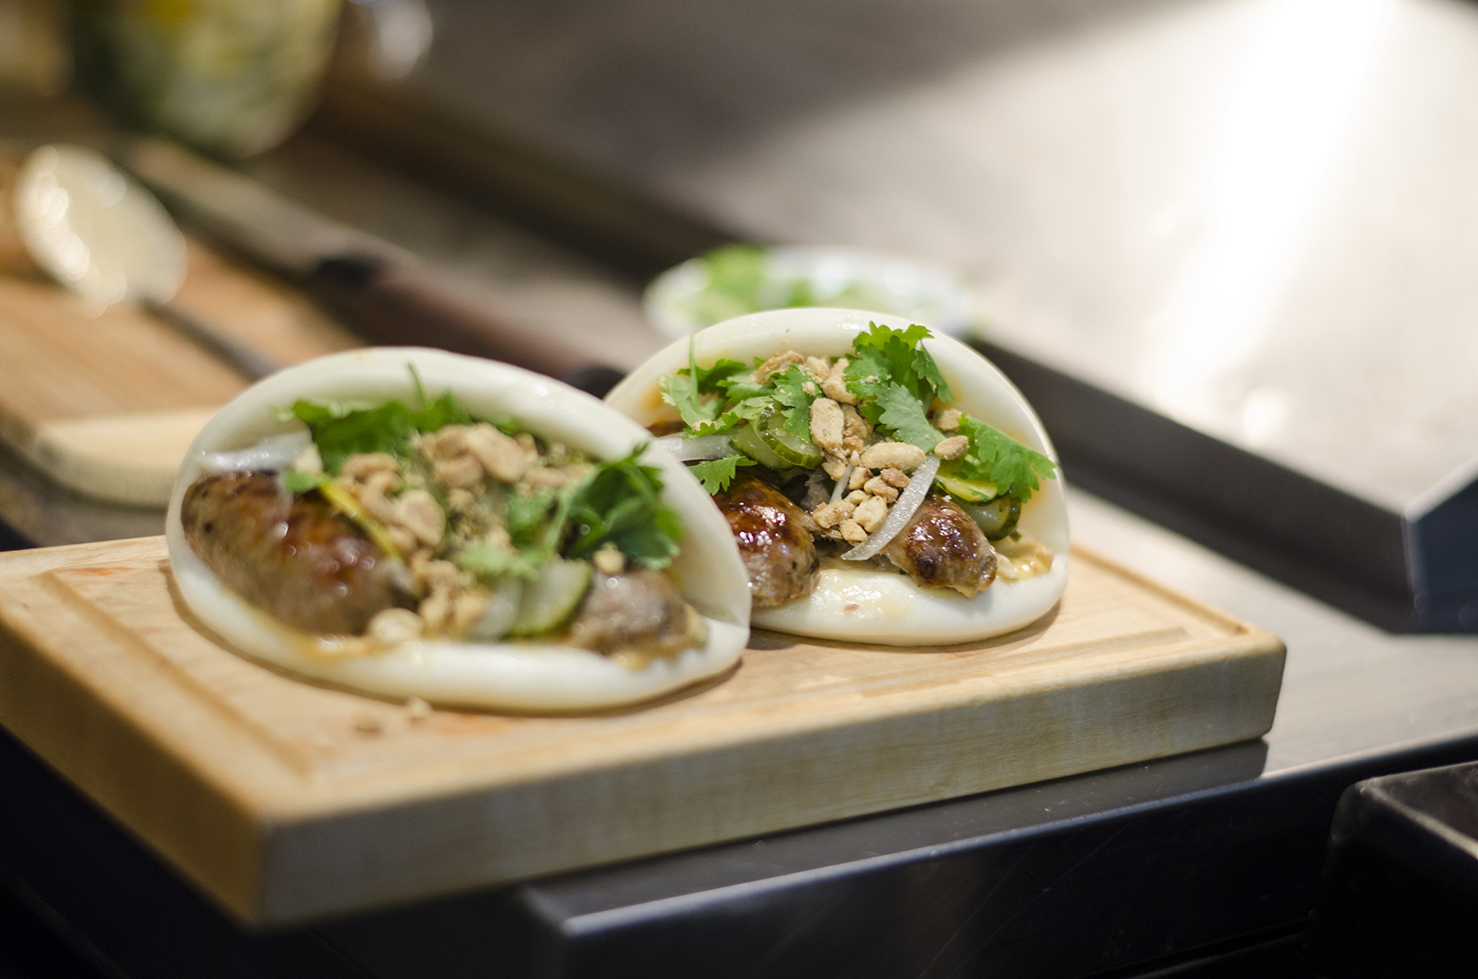 Bao buns, please!